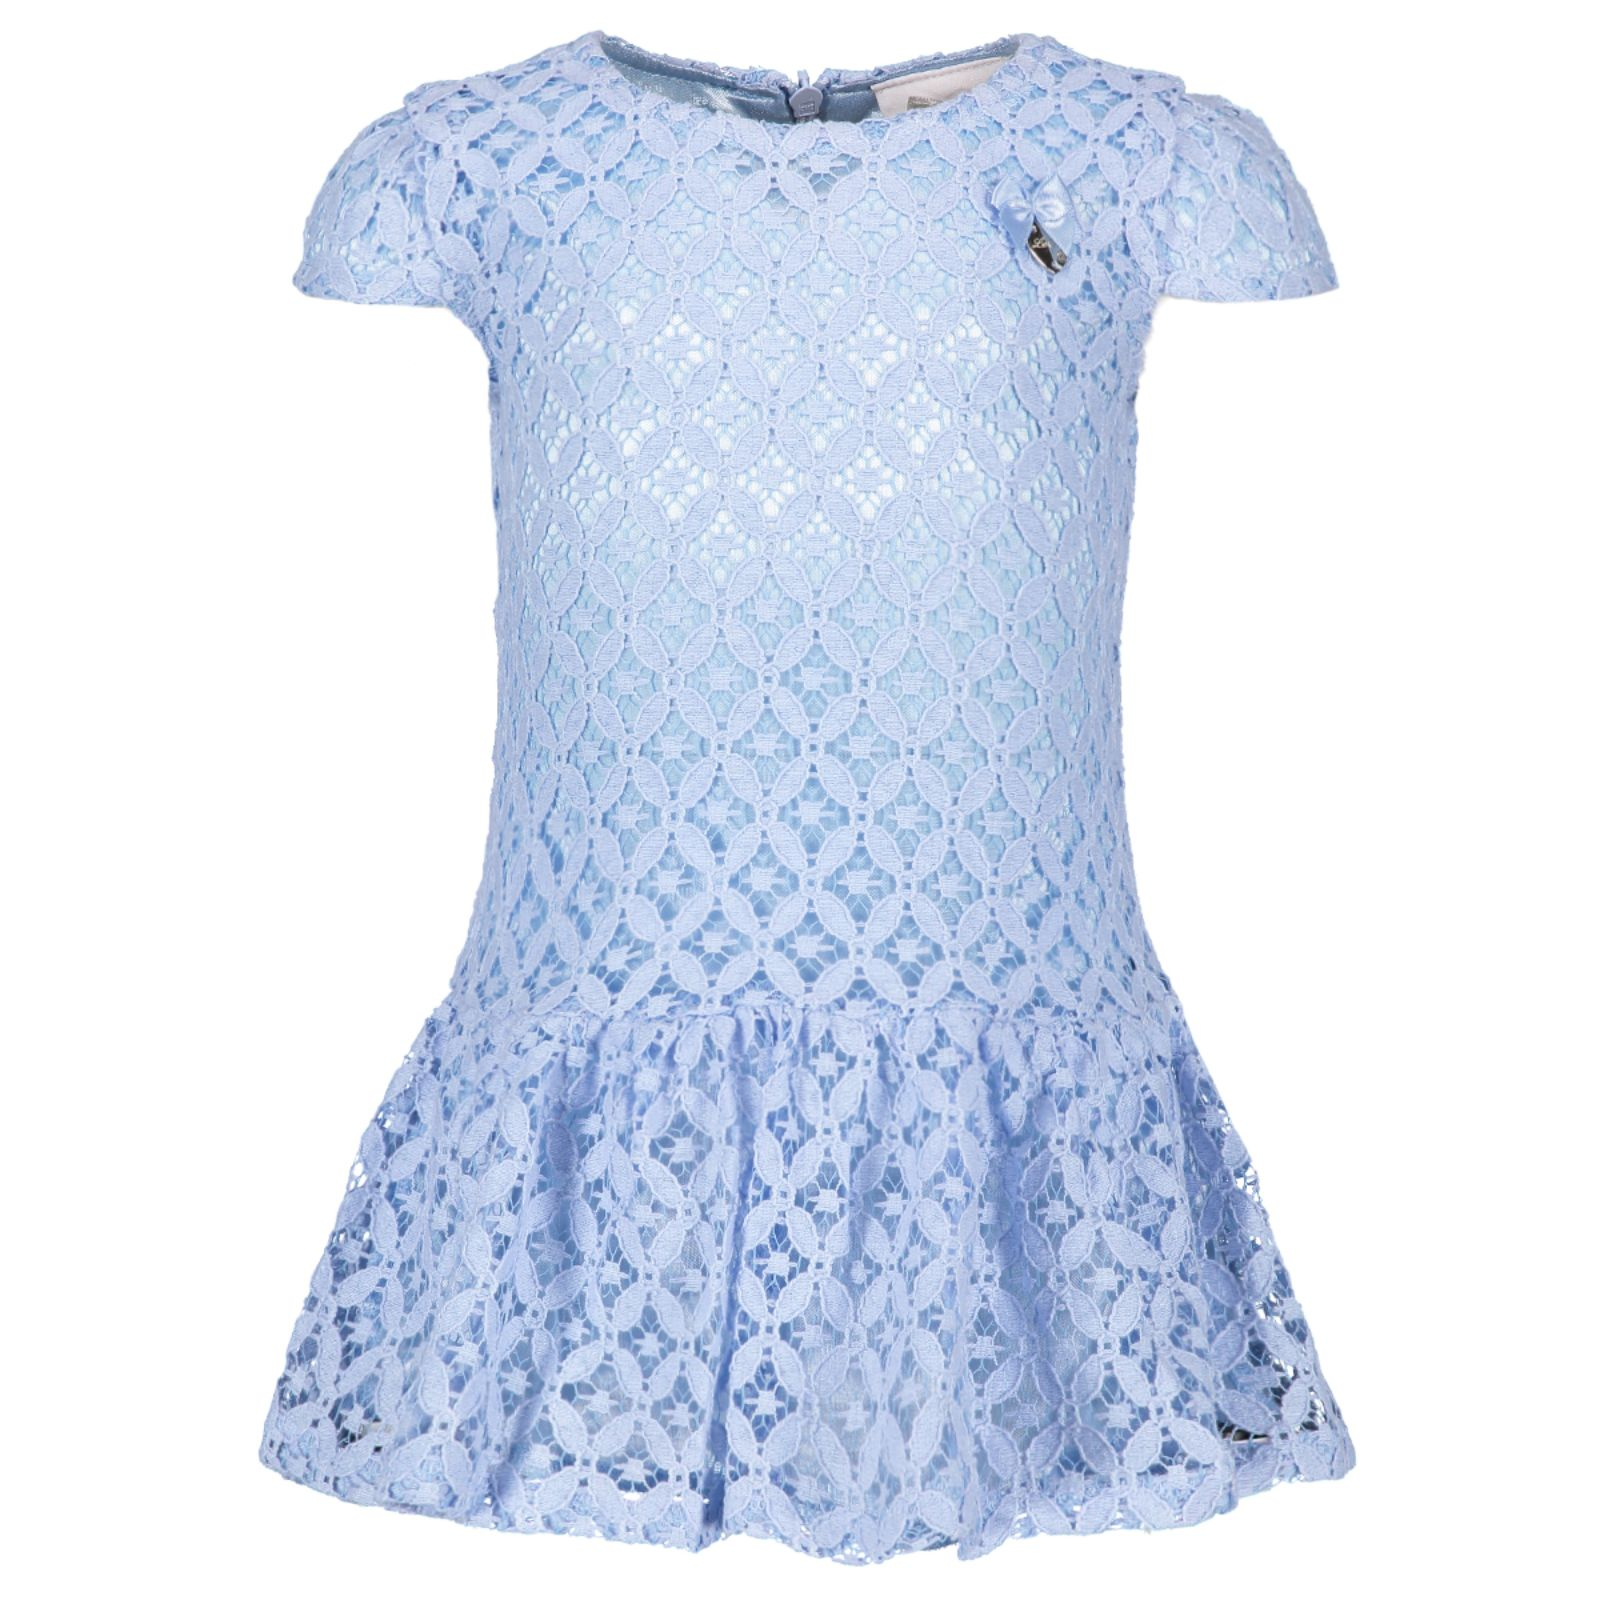 79ed6a608a0 Le Chic Baby Girls Blue Lace Dress